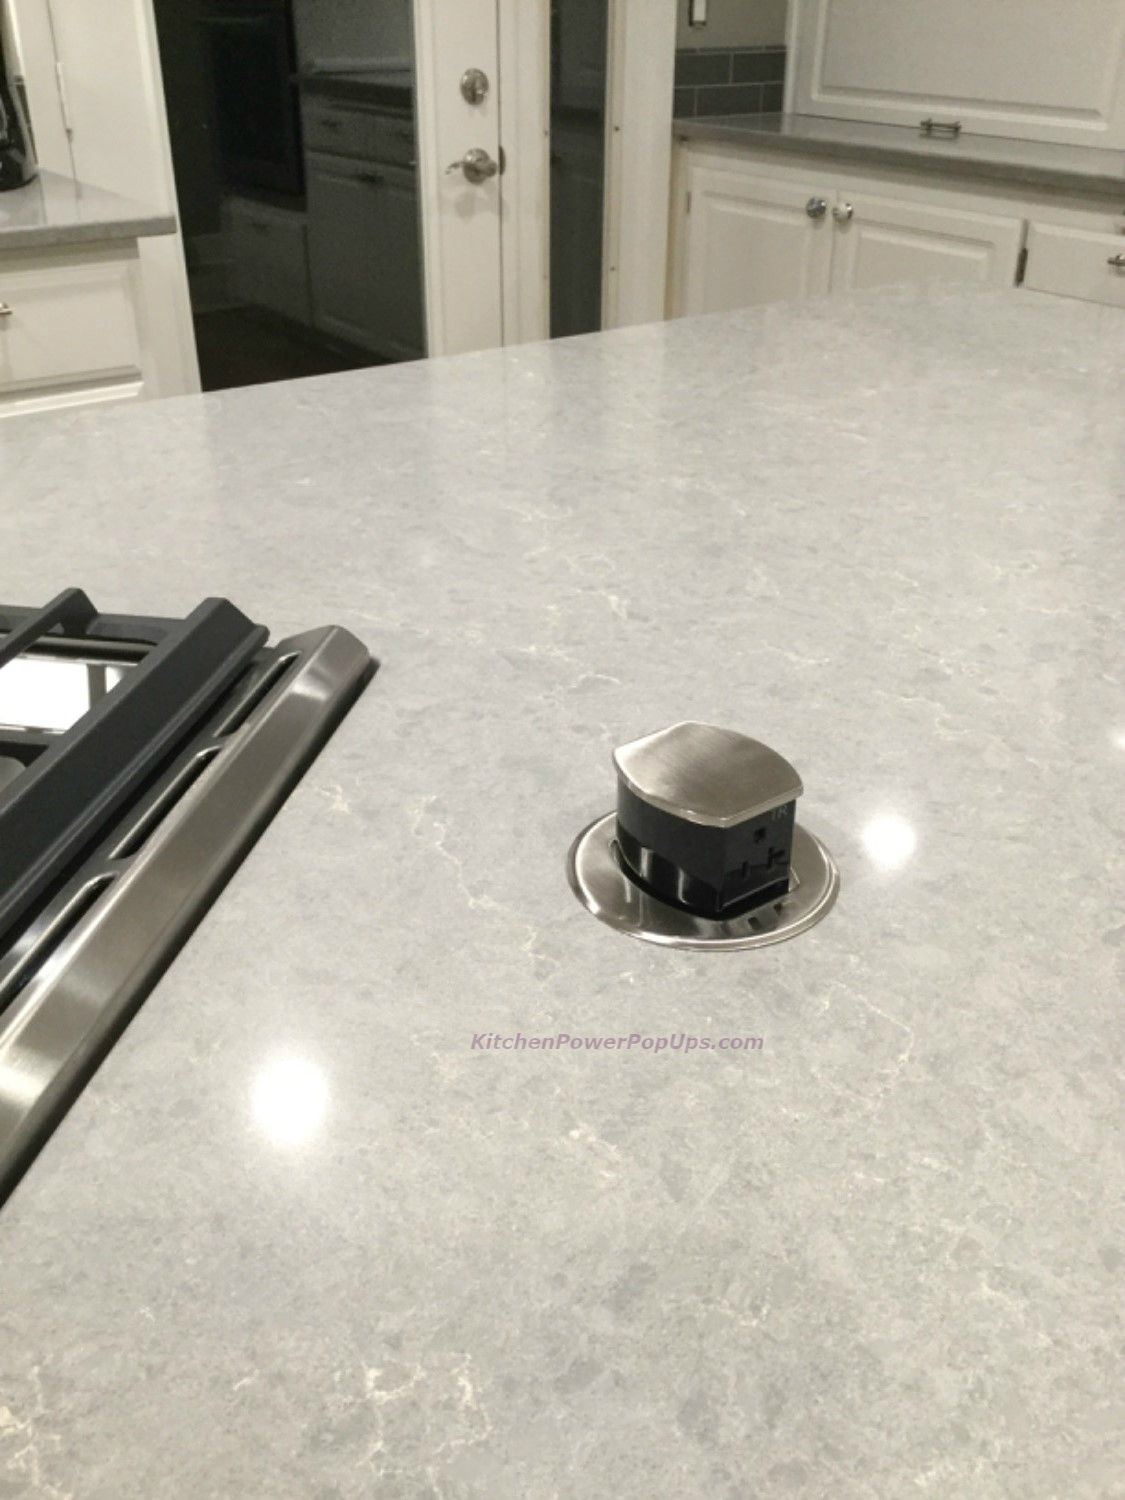 Countertop 2 Sided Spill Proof Pop Up 20a Outlet Surface Mount Nickel Pop Up Outlets Pop Up Countertops